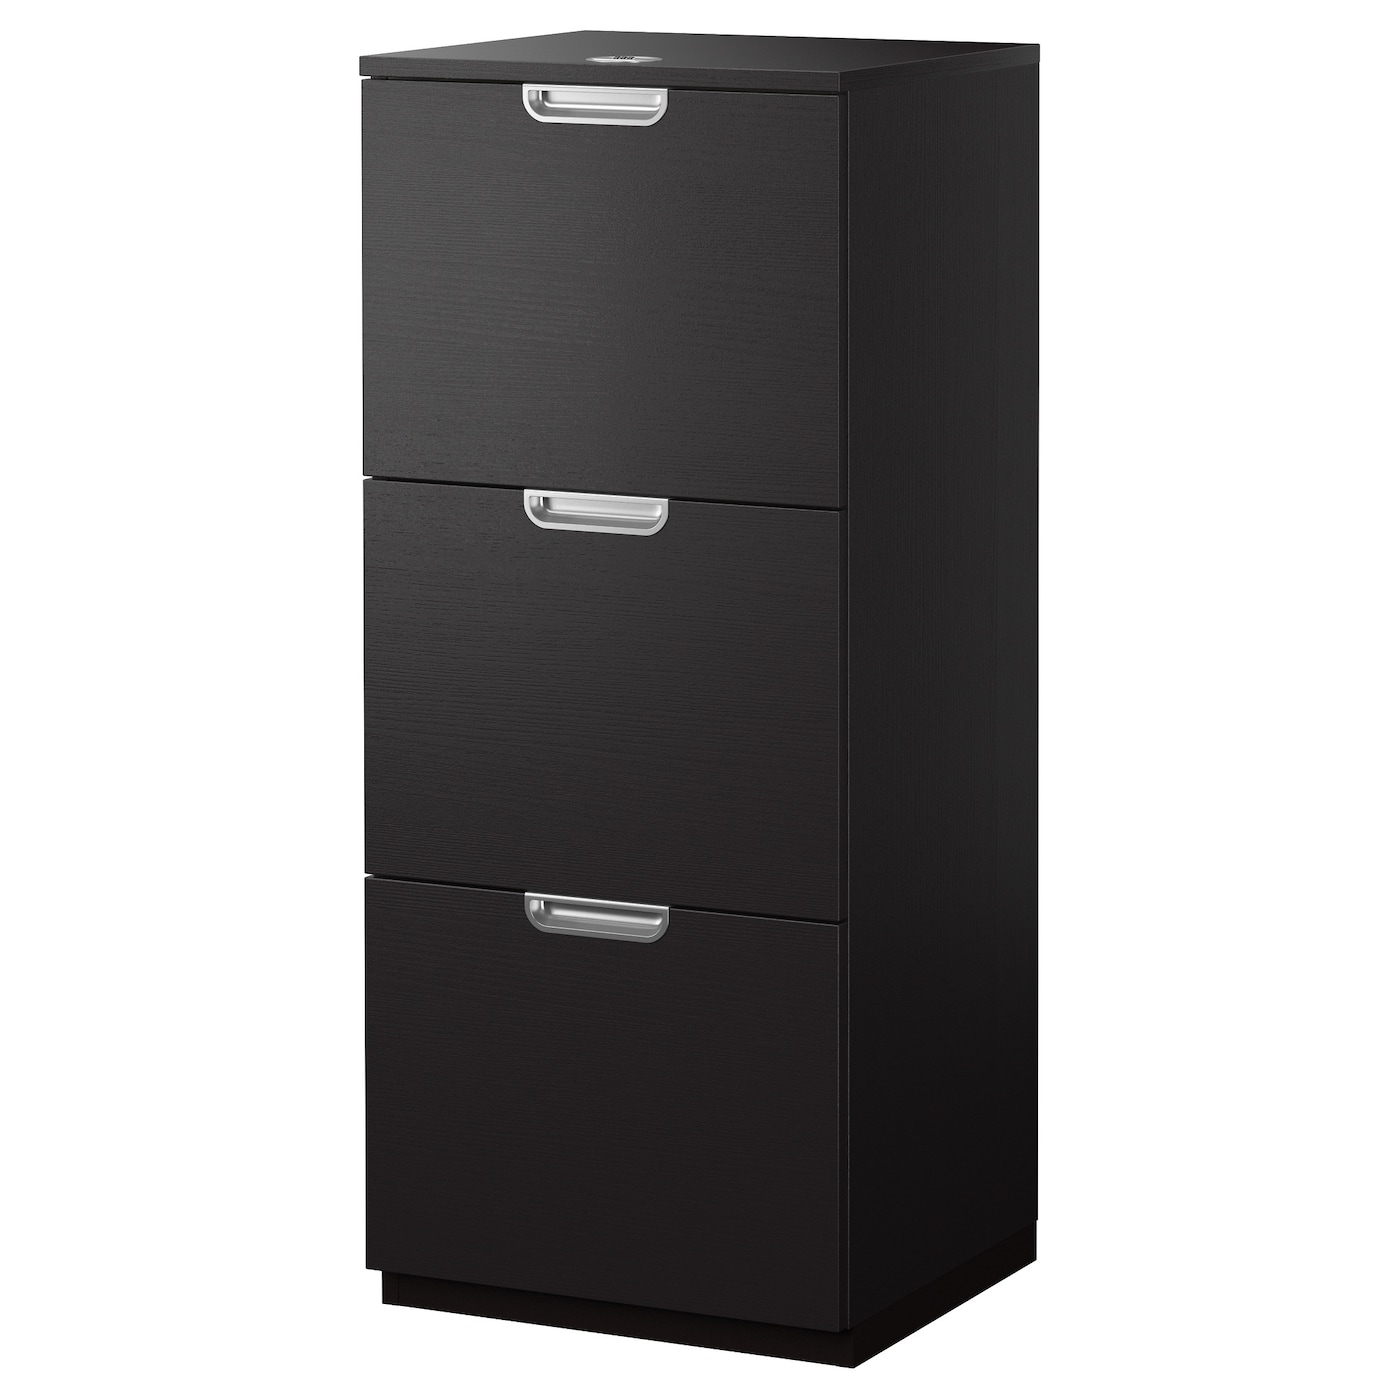 ikea office cabinets galant file cabinet black brown 51 x 120 cm ikea 17719